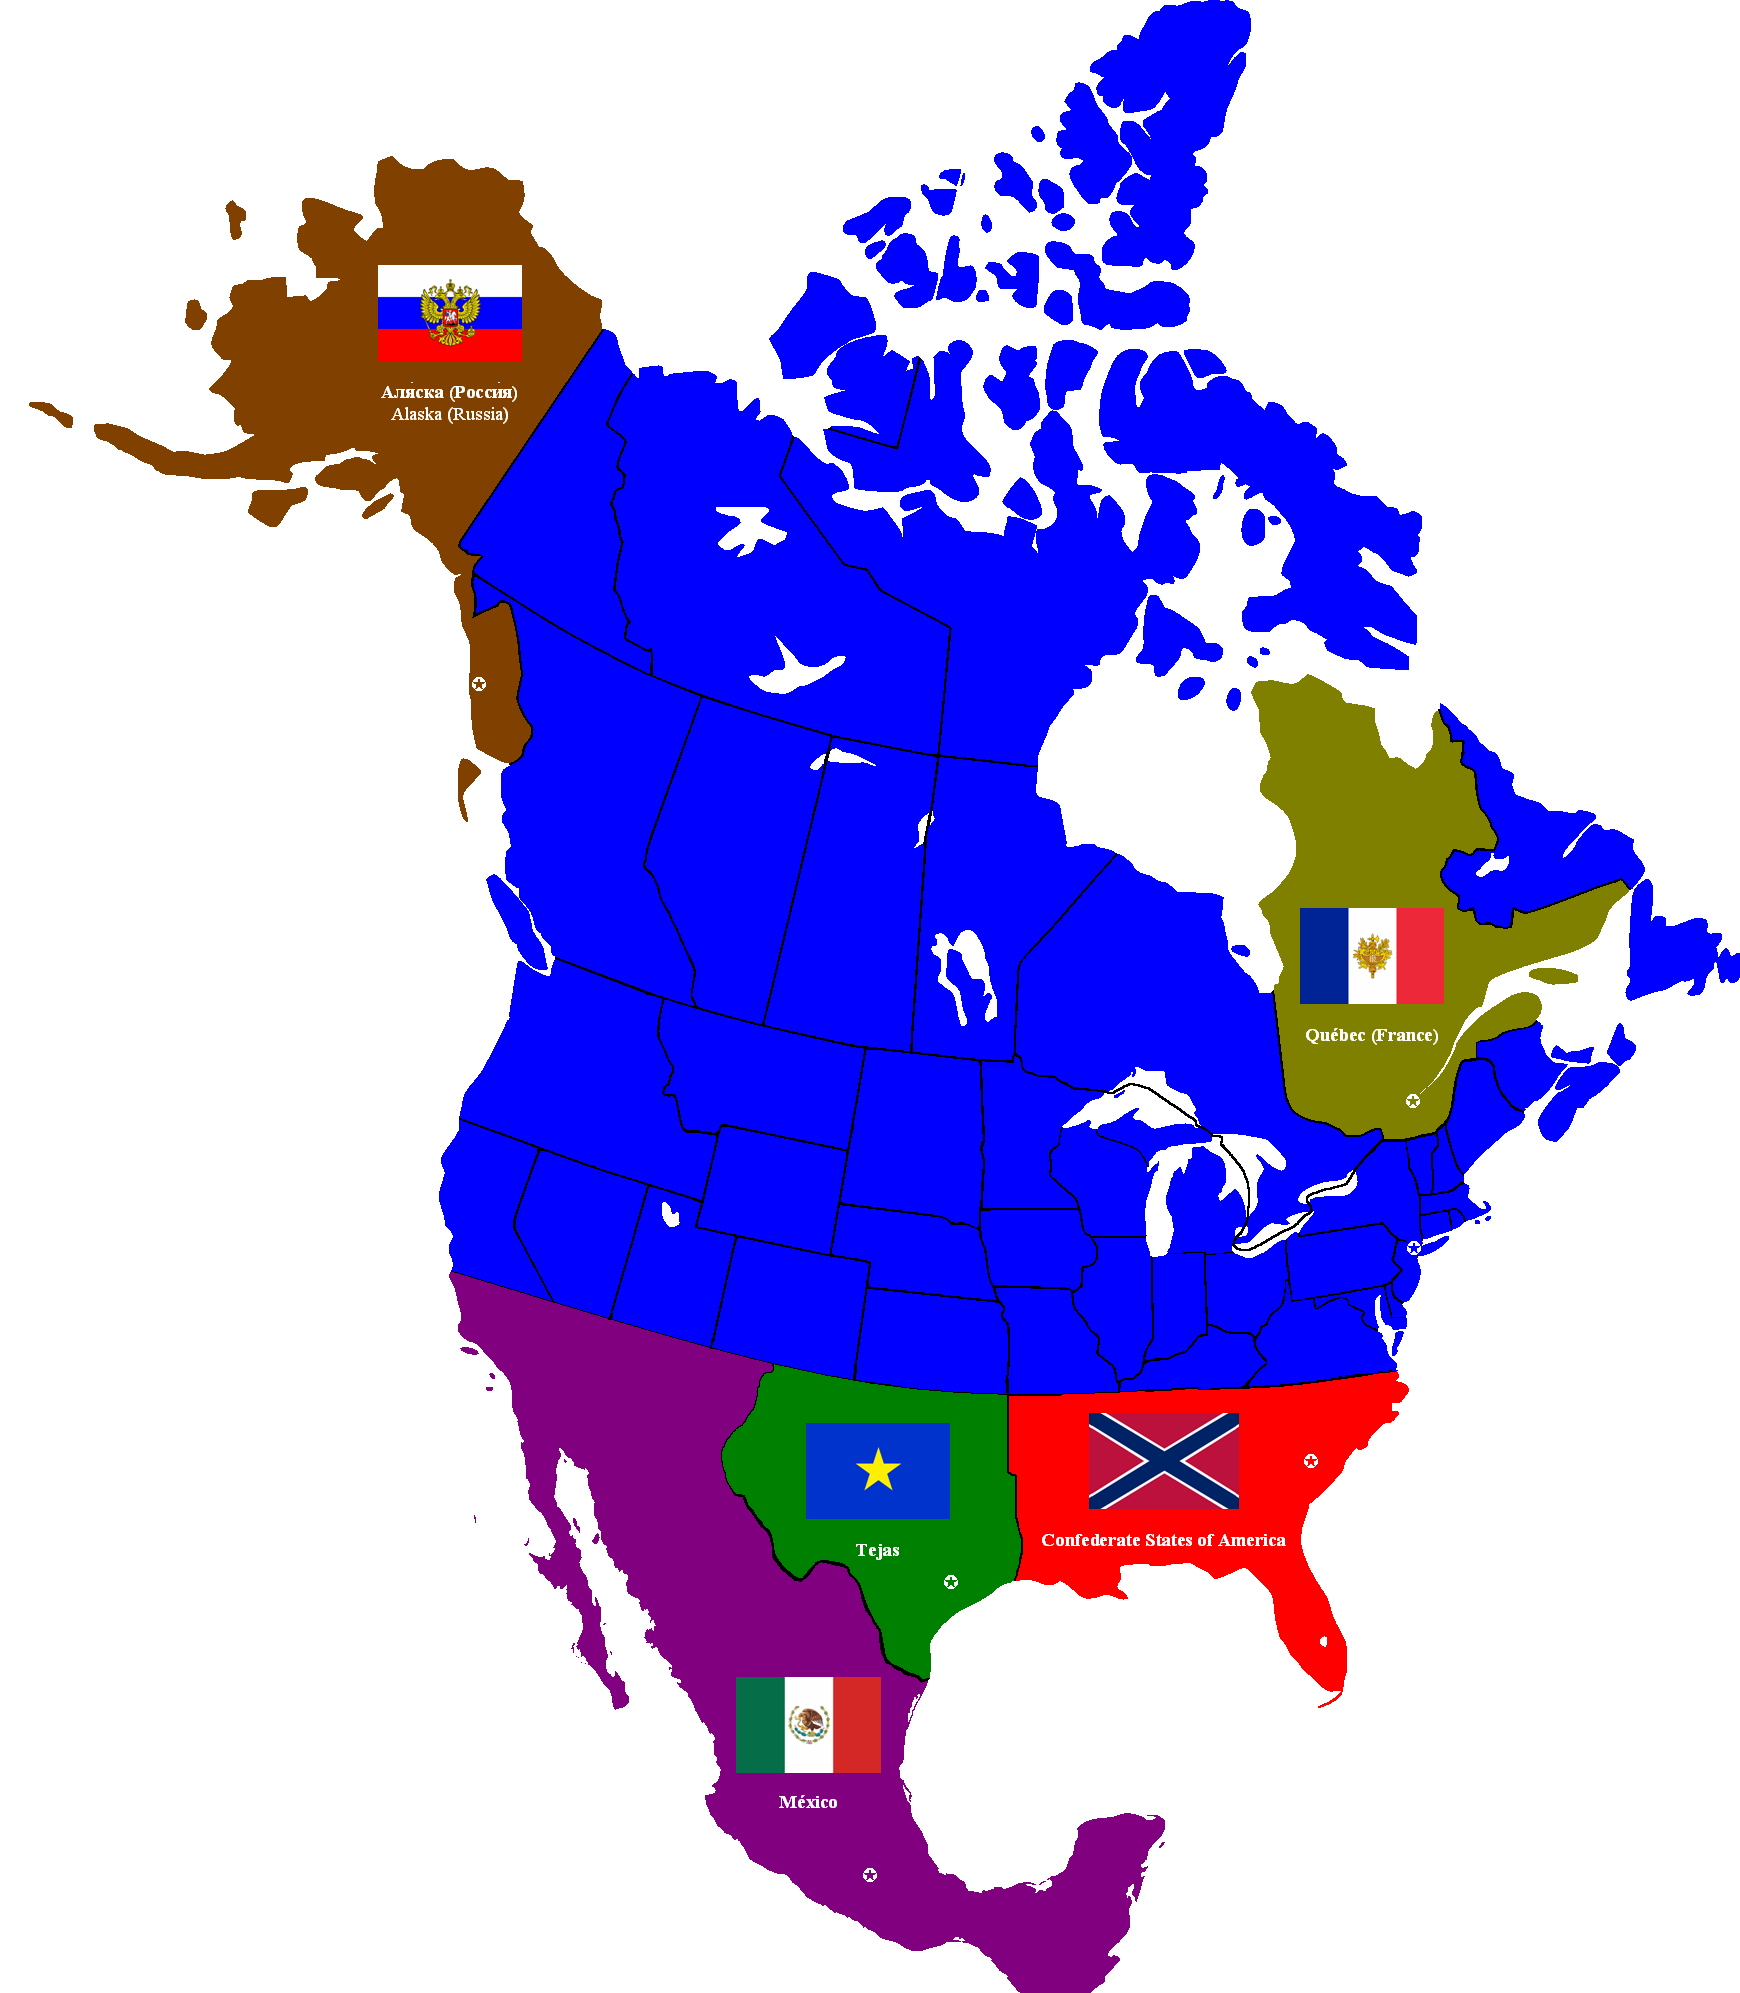 Federal States of America  Alternative History  FANDOM powered